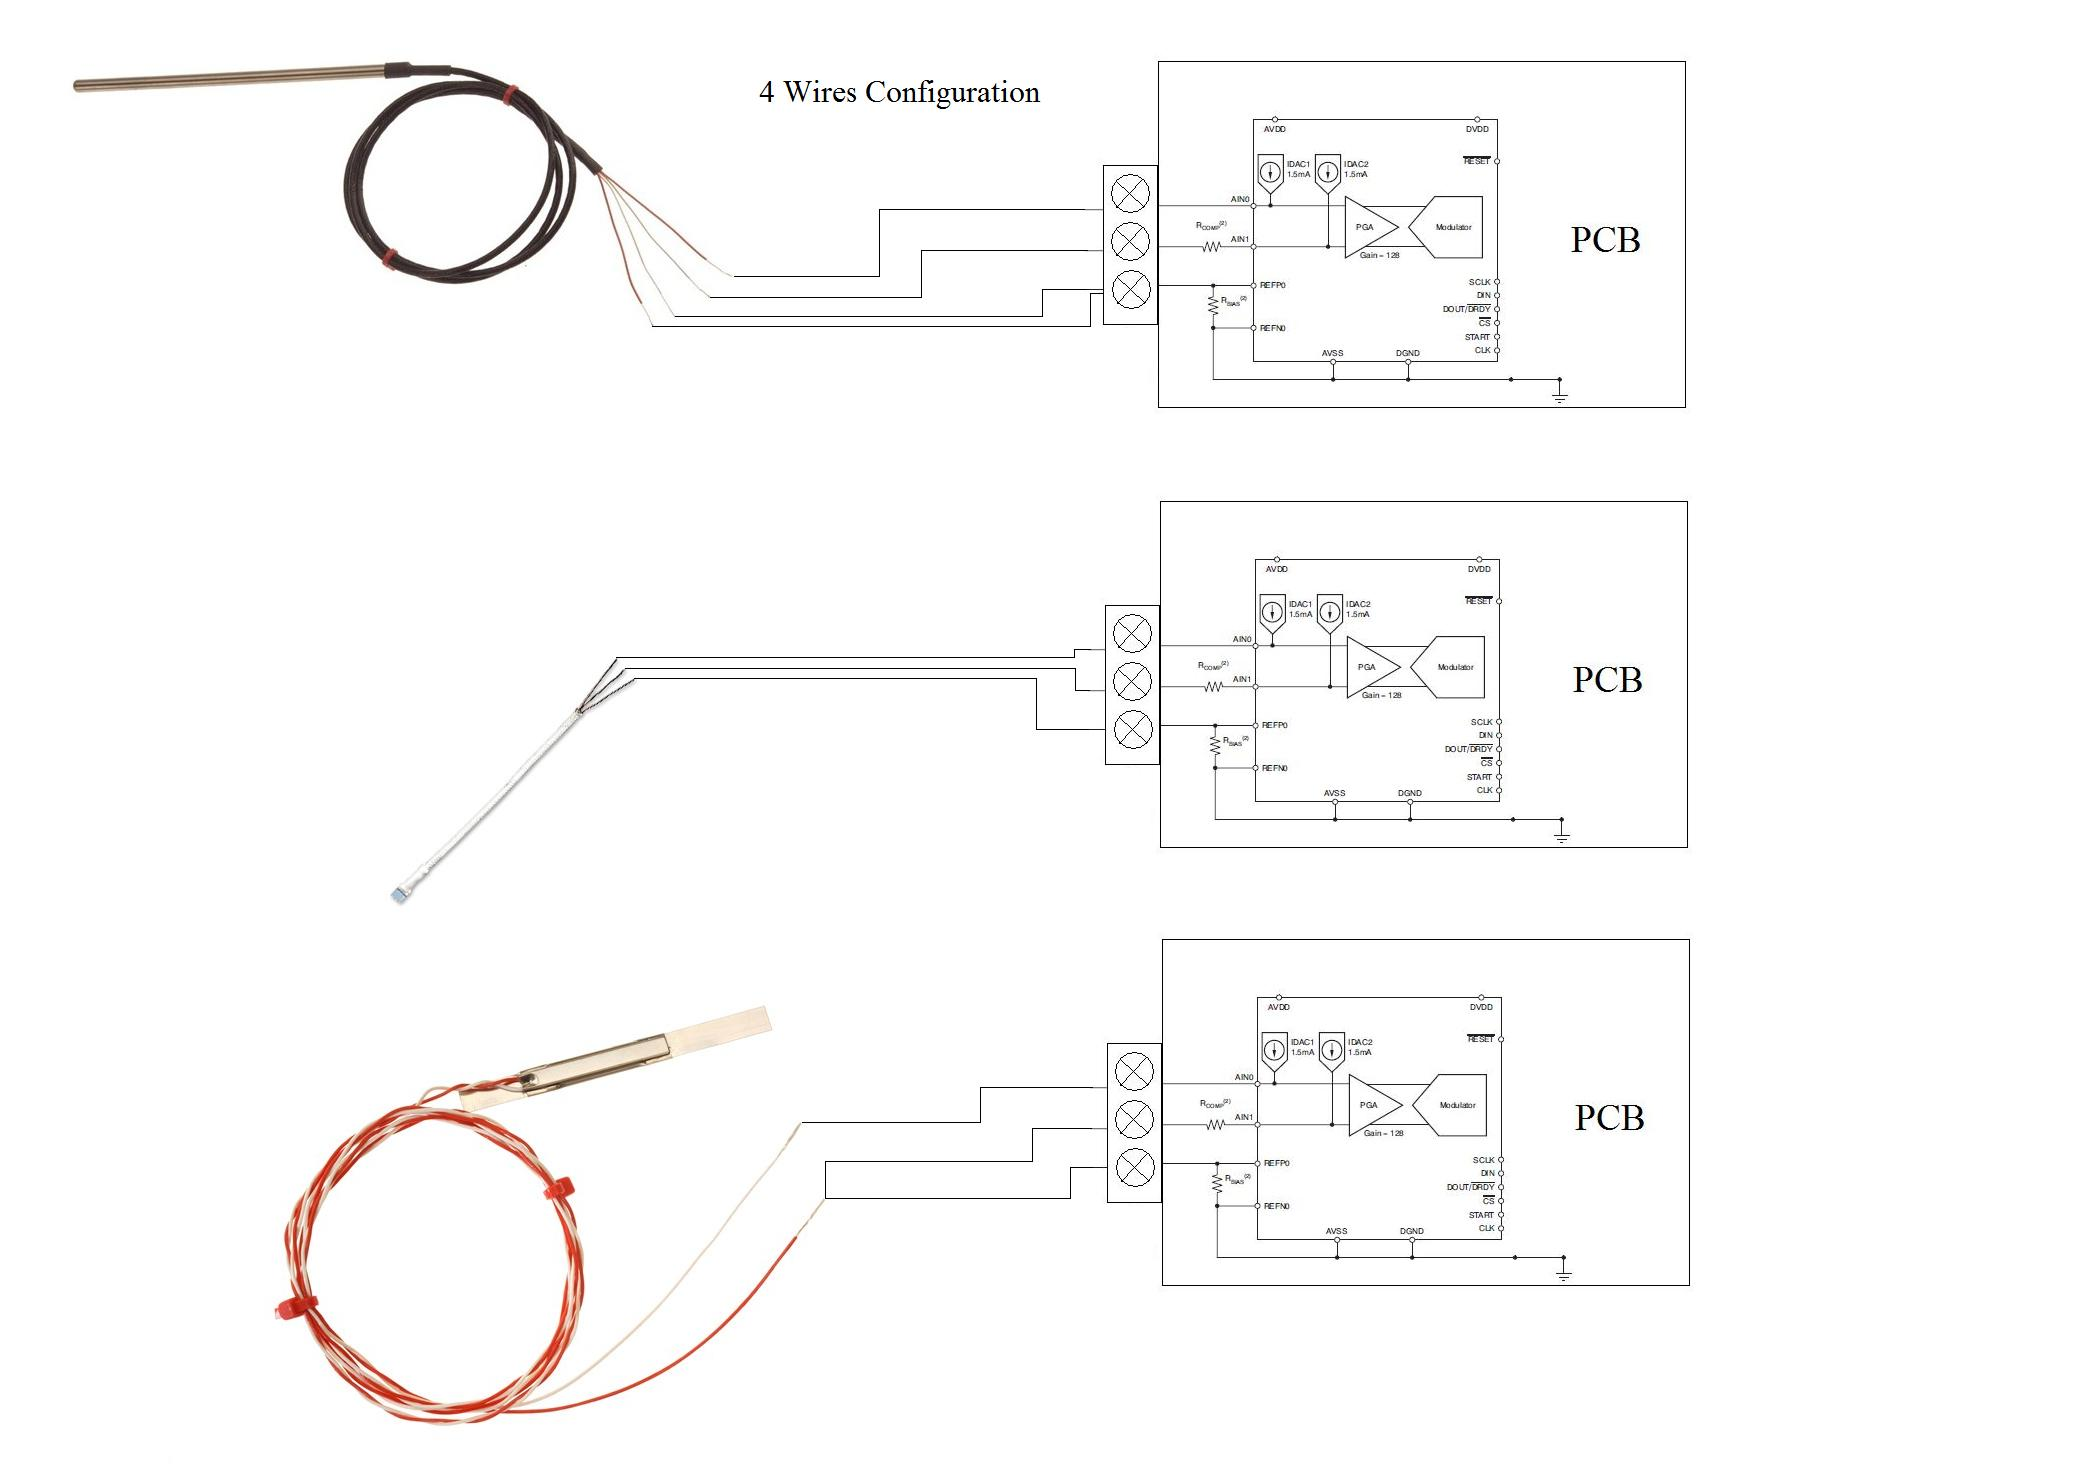 4 wire rtd connection facbooik com Rtd Sensor Wiring 3 wire rtd wiring diagram rtd sensor wiring